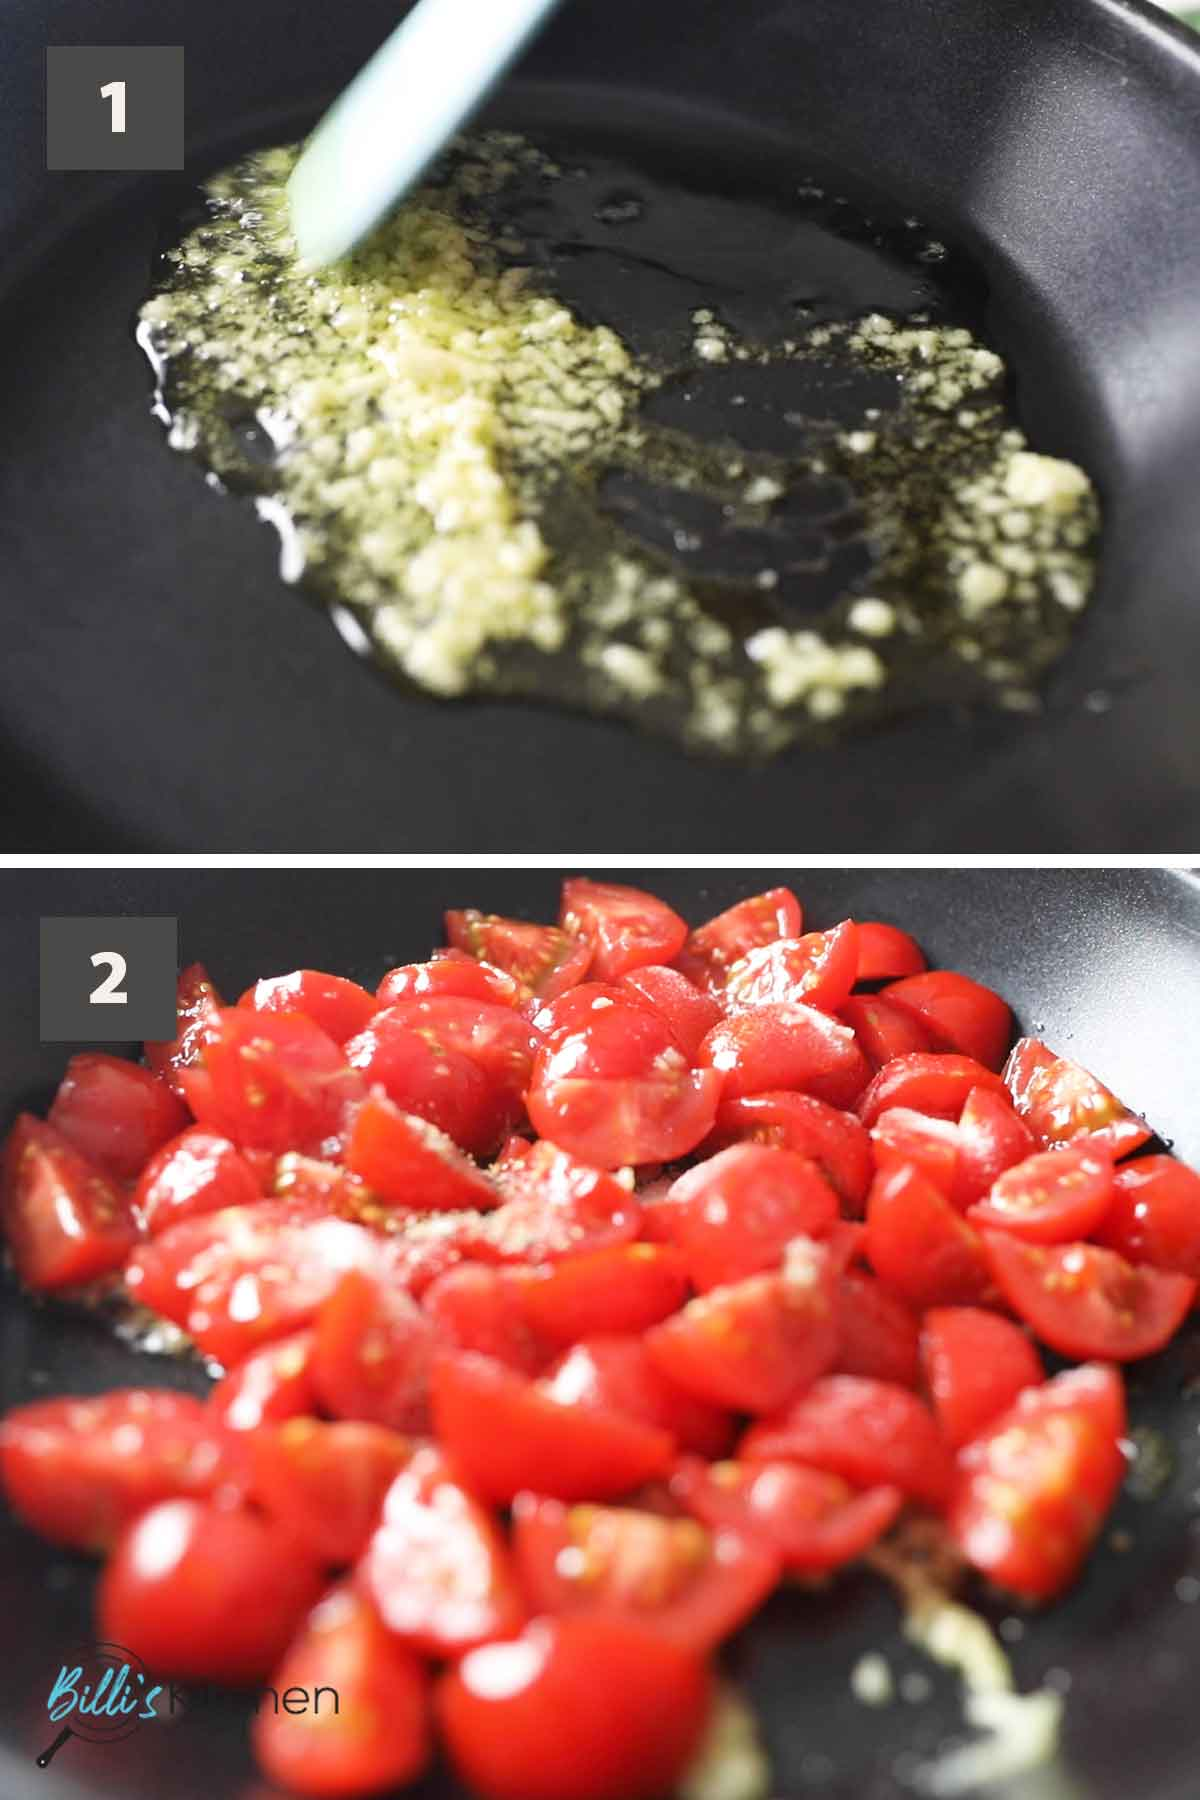 First part of a collage of images showing the step by step process of making pasta with cherry tomato sauce.